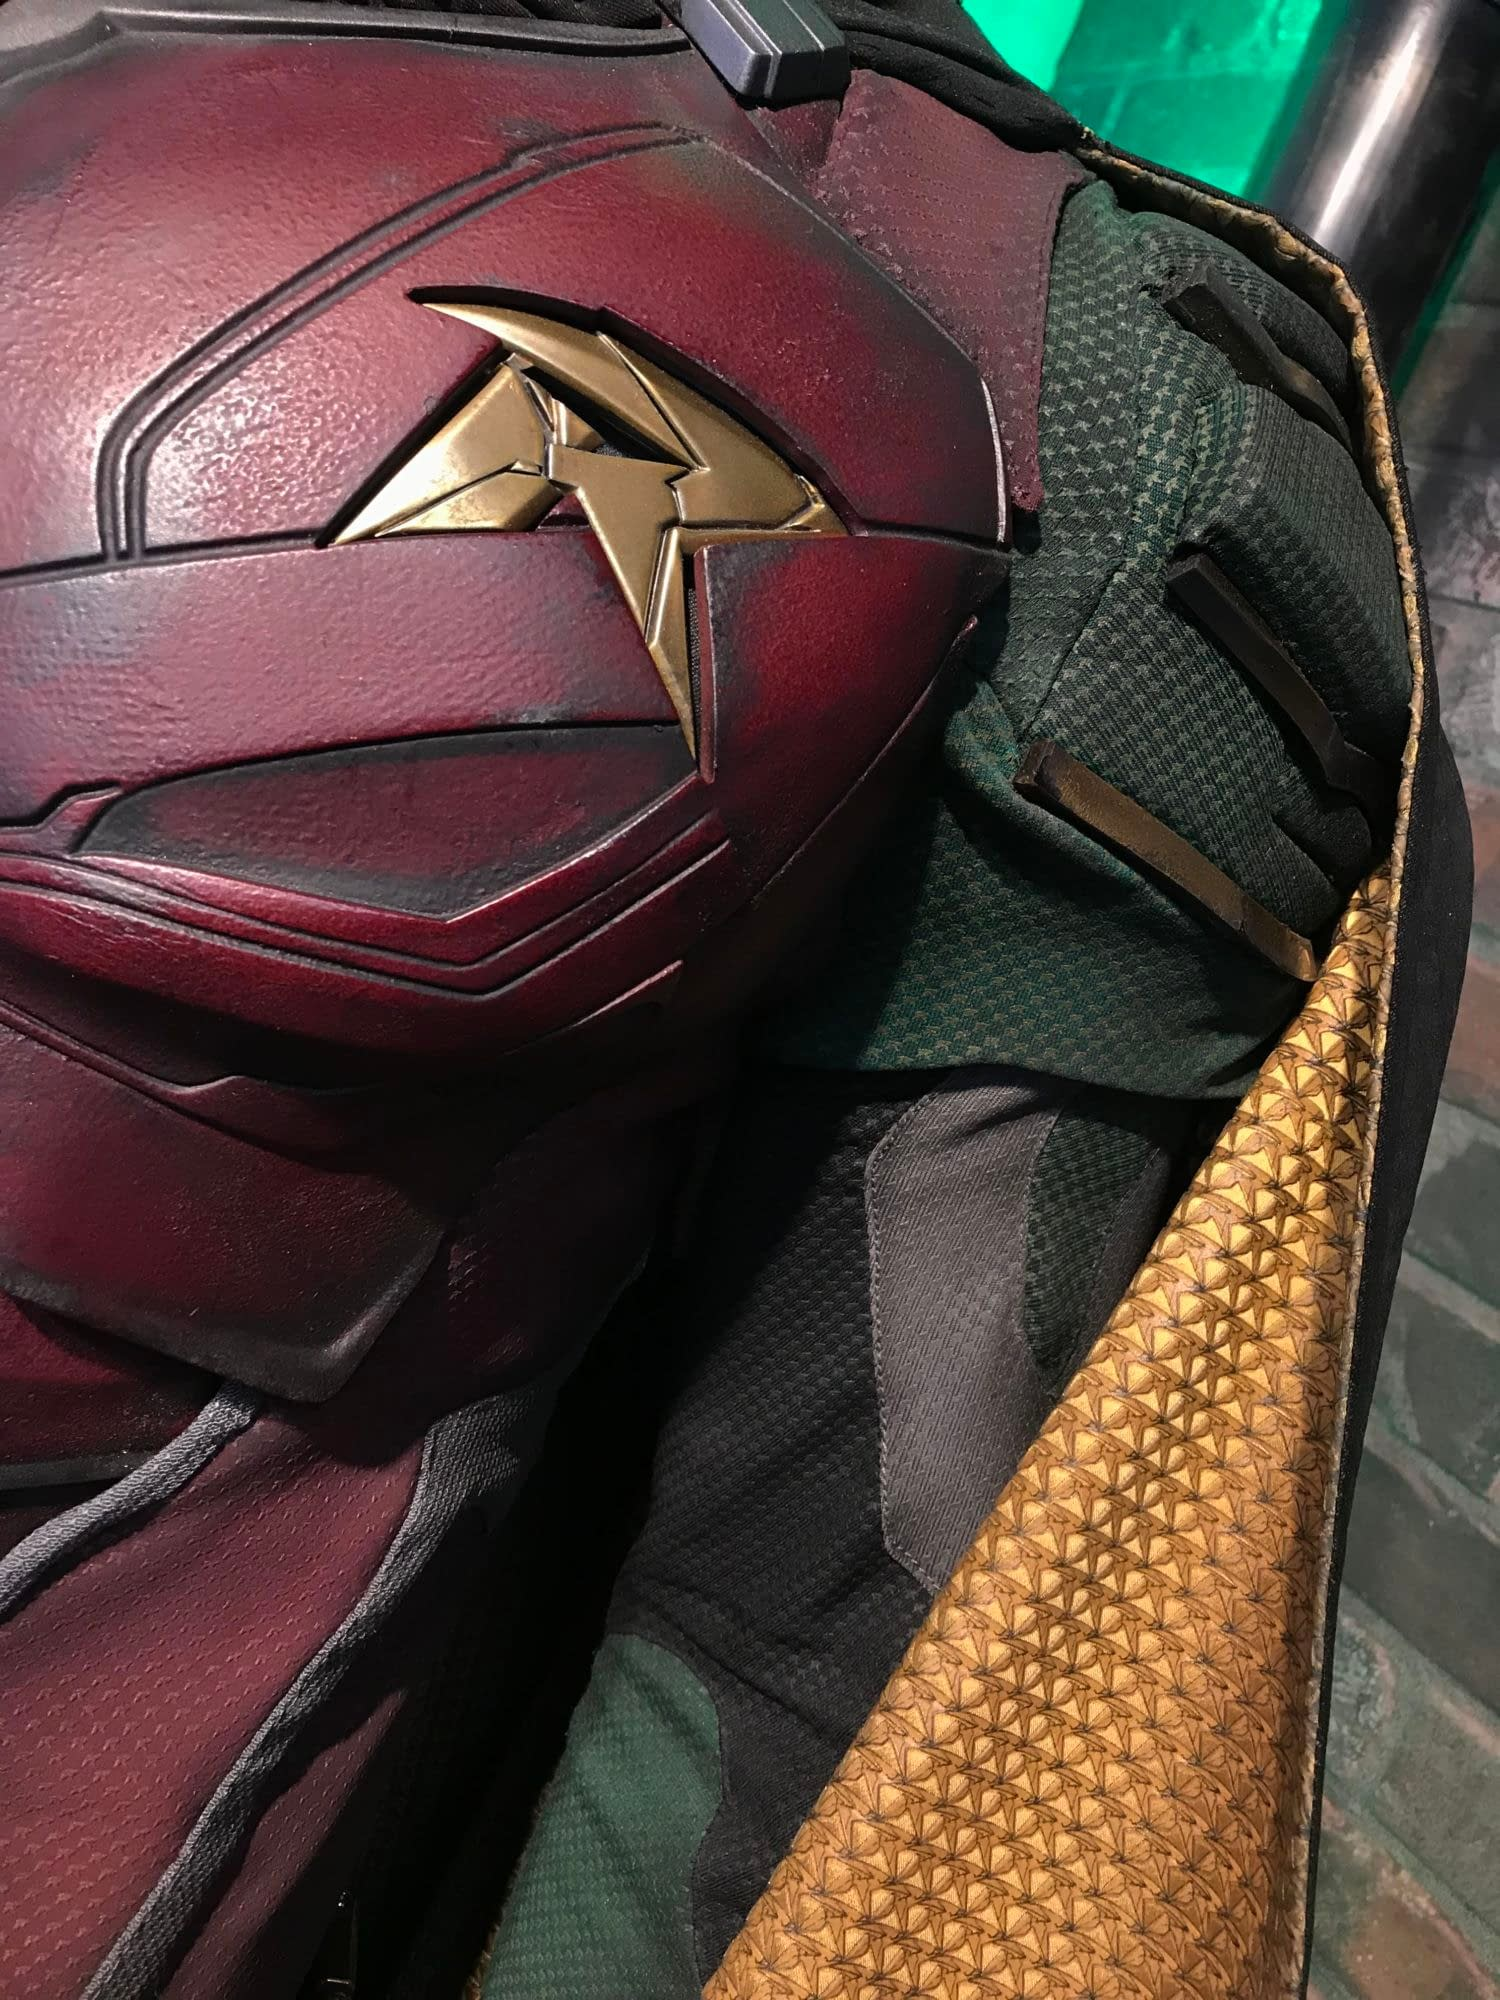 'Titans': DC Daily Offers Best Look Yet at Robin's Suit, Amazing Details